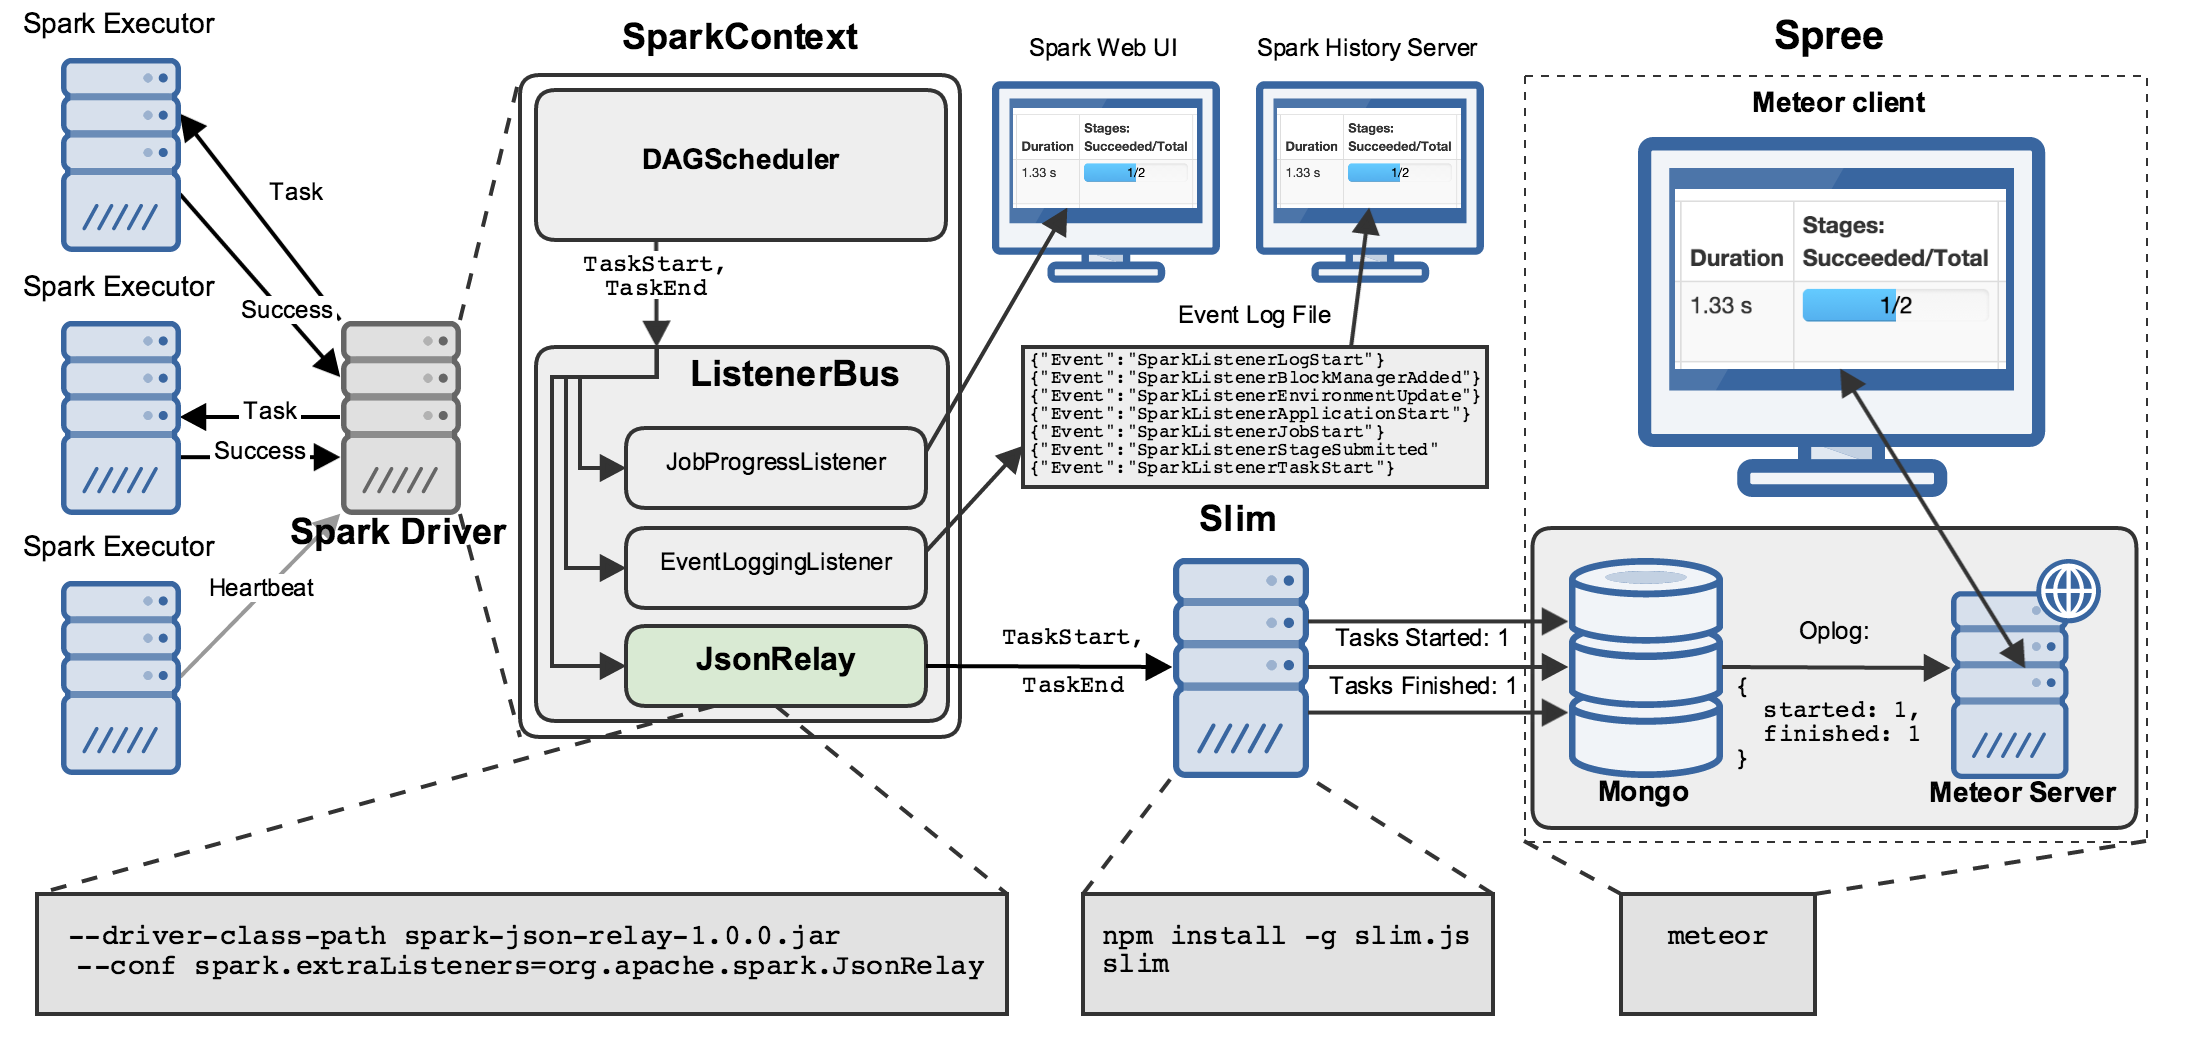 Infrastructure flow-chart showing various Spark components, Spree components, and how they work together